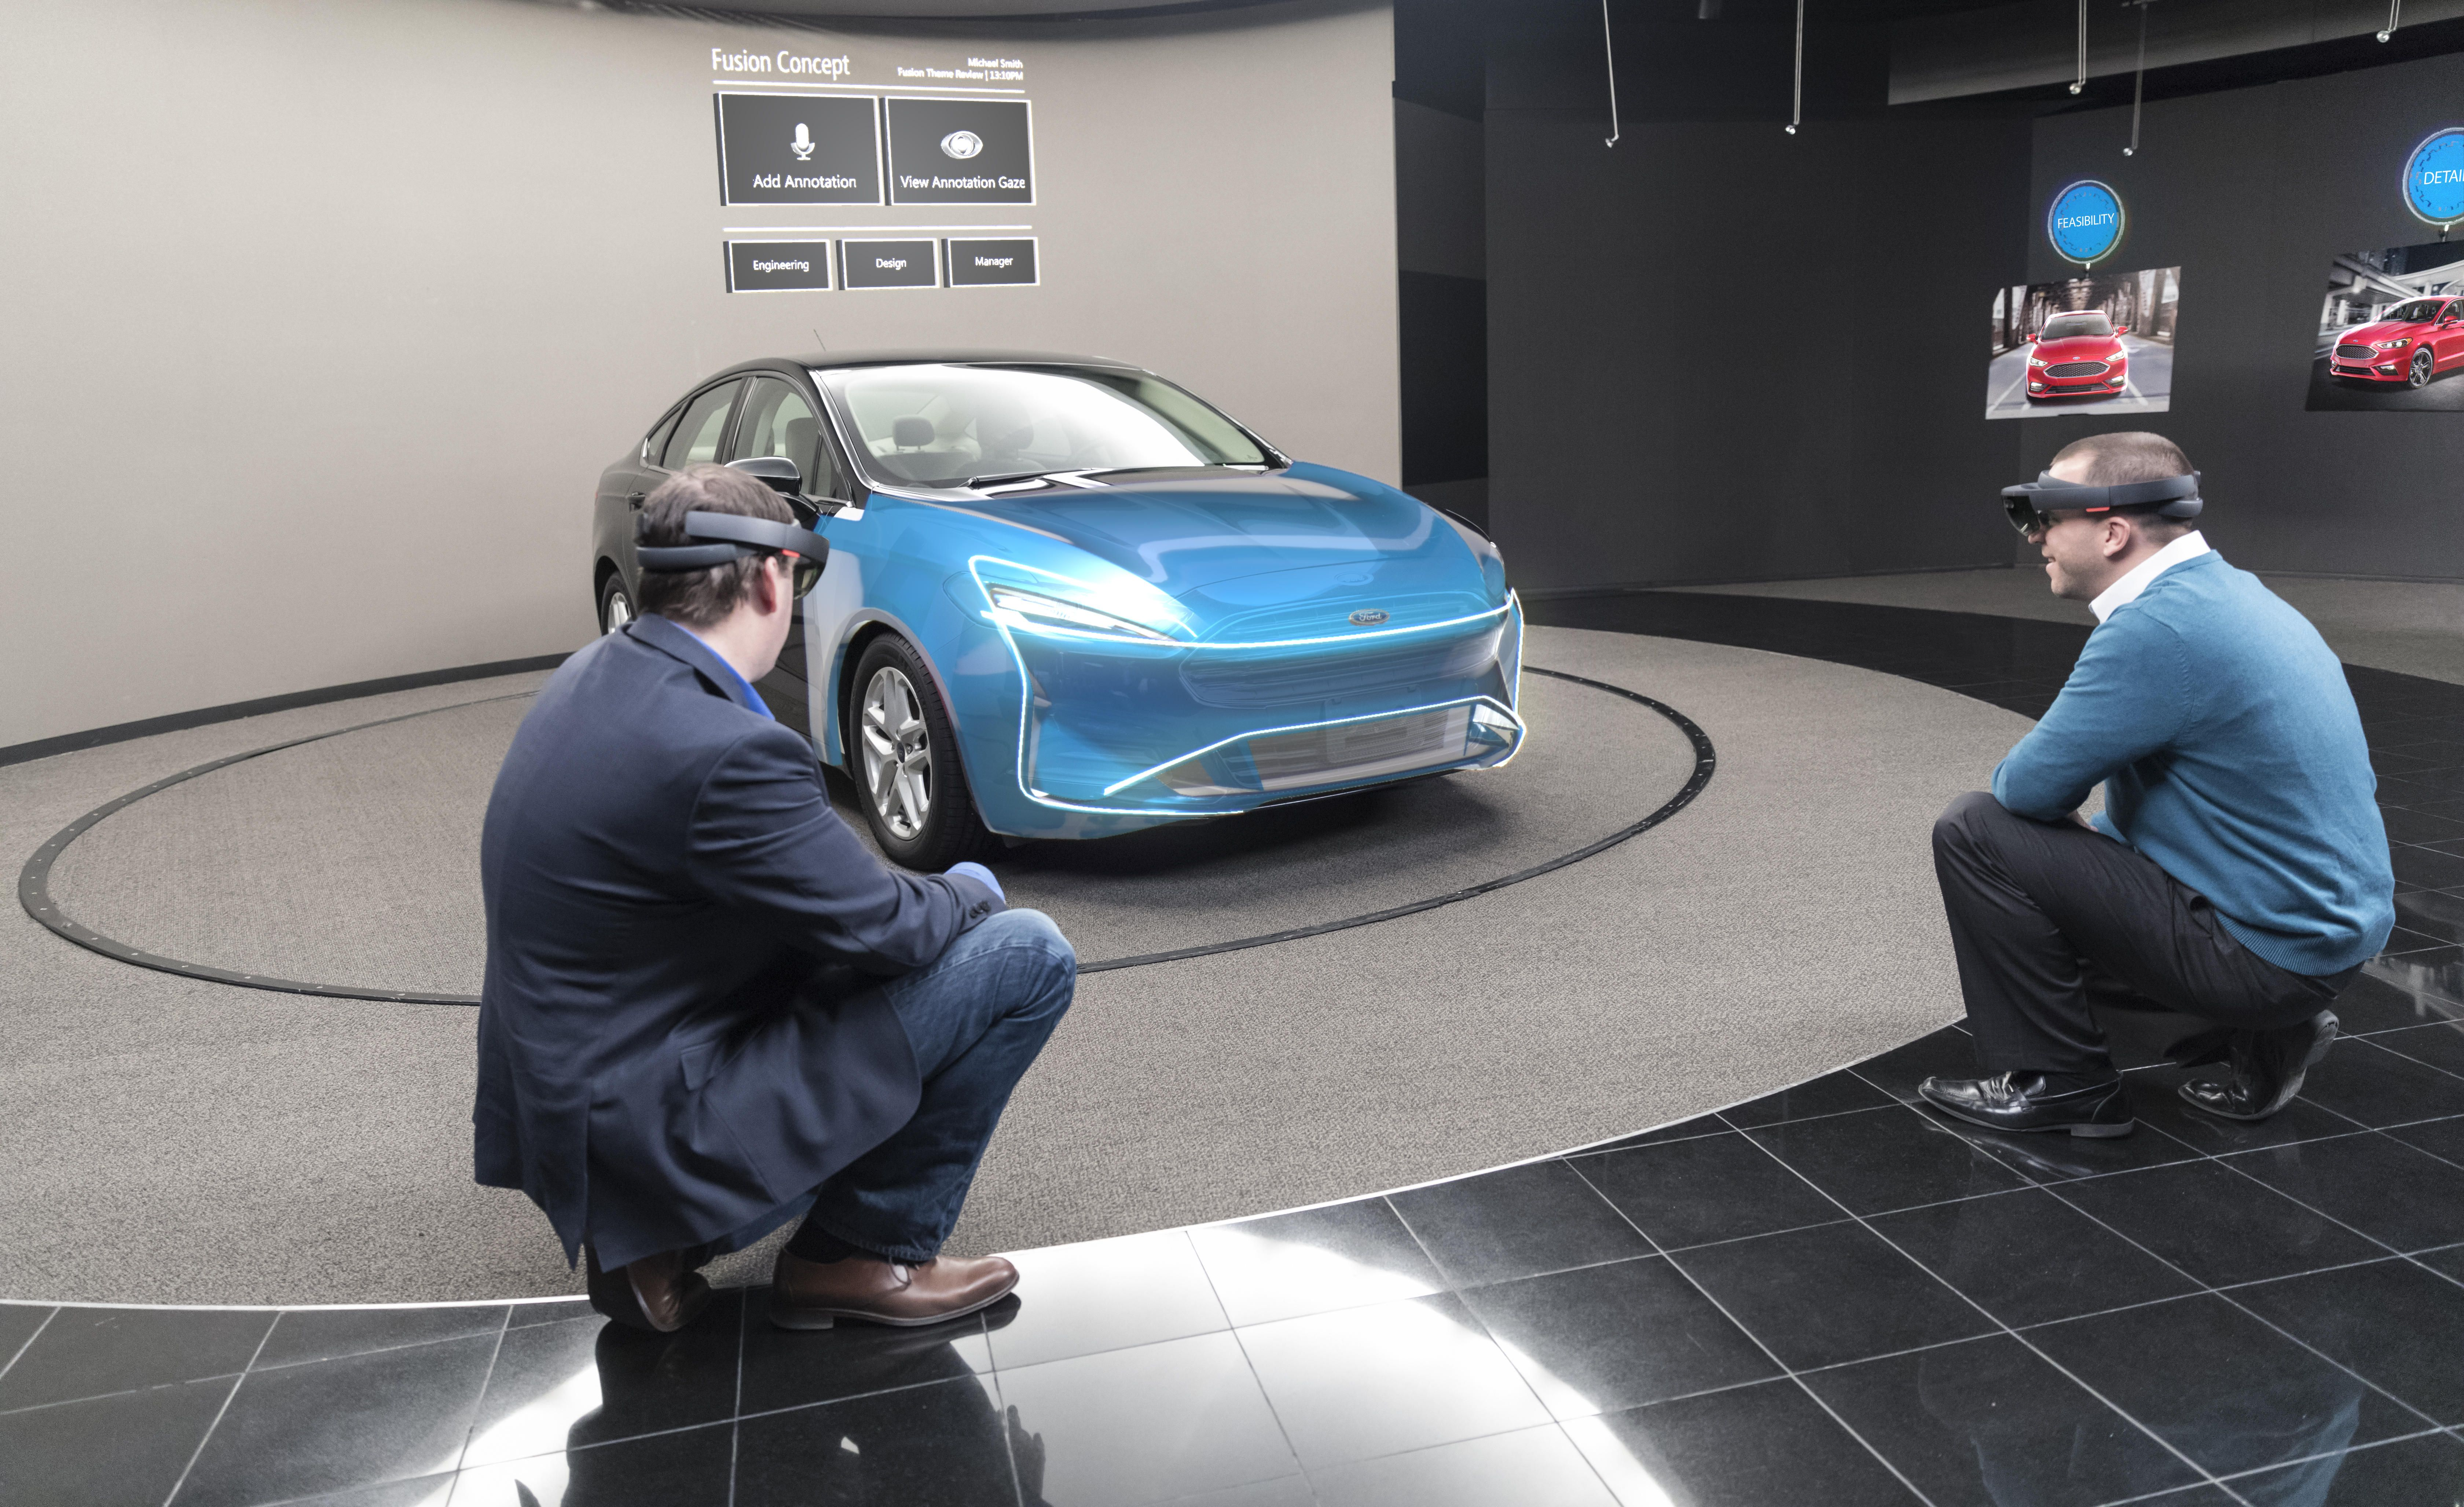 Ford using hologram goggles